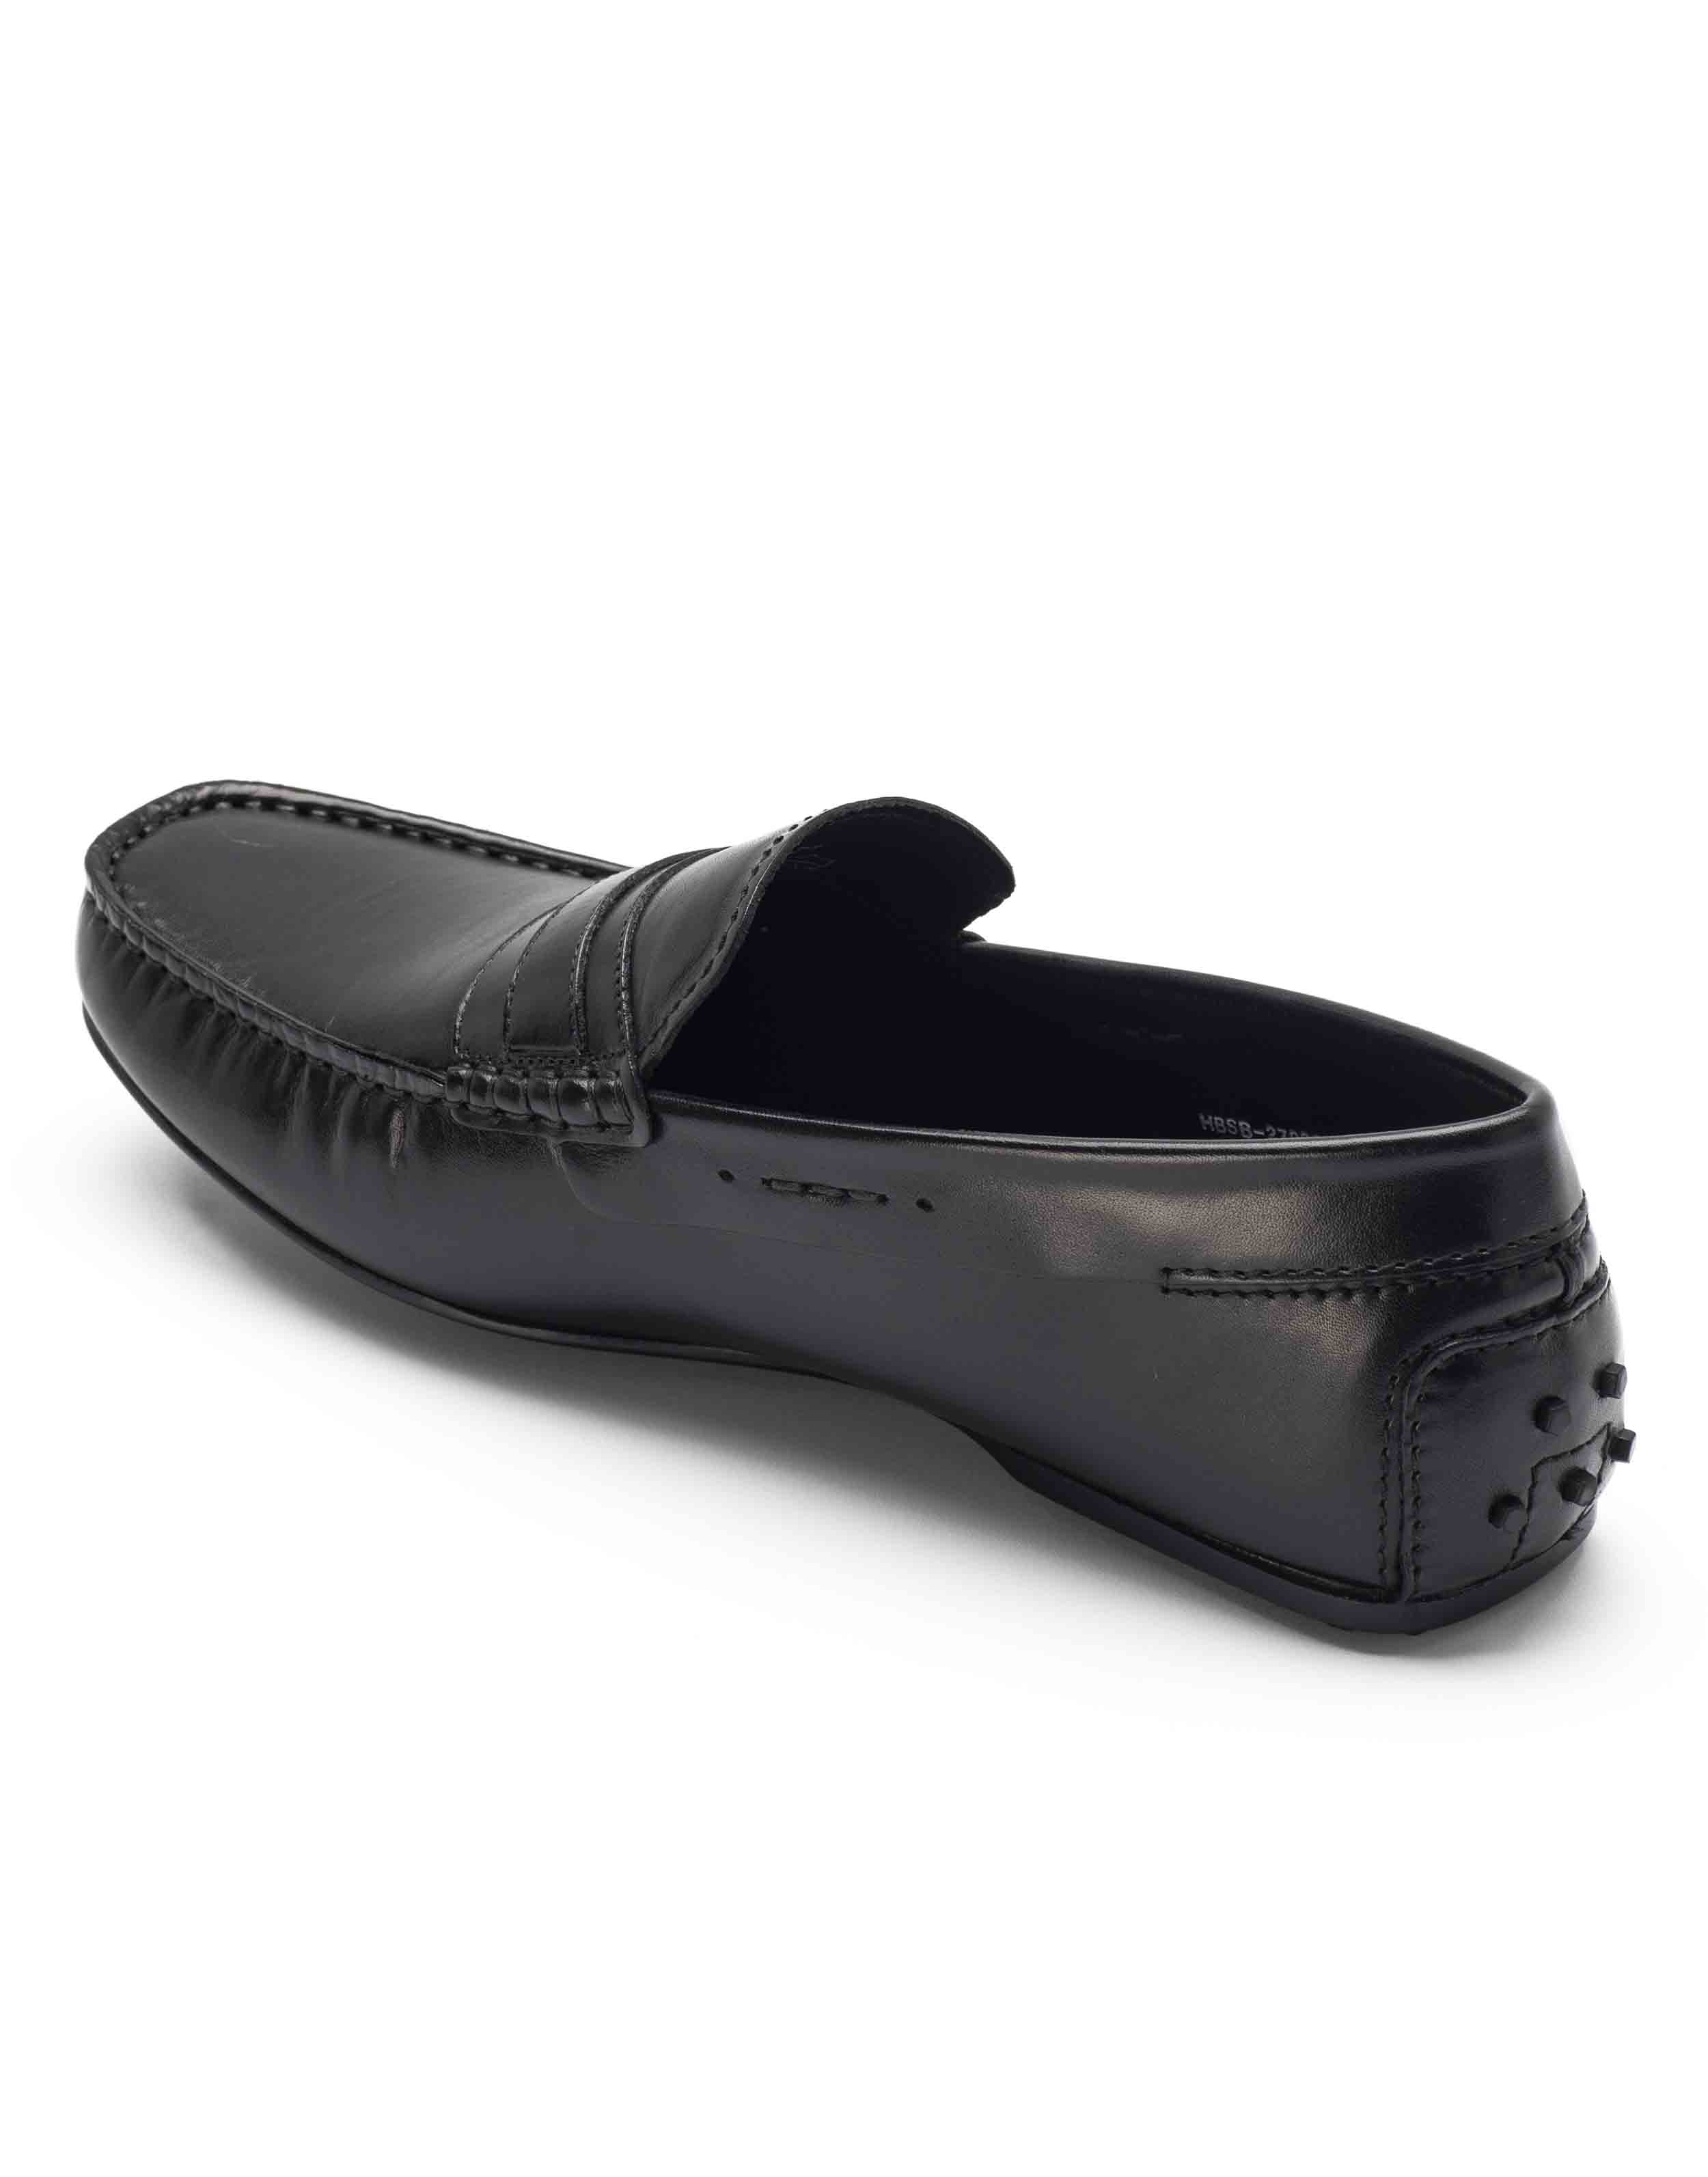 HEEL _ BUCKLE LONDON DRIVER LOAFERS SHOES__3